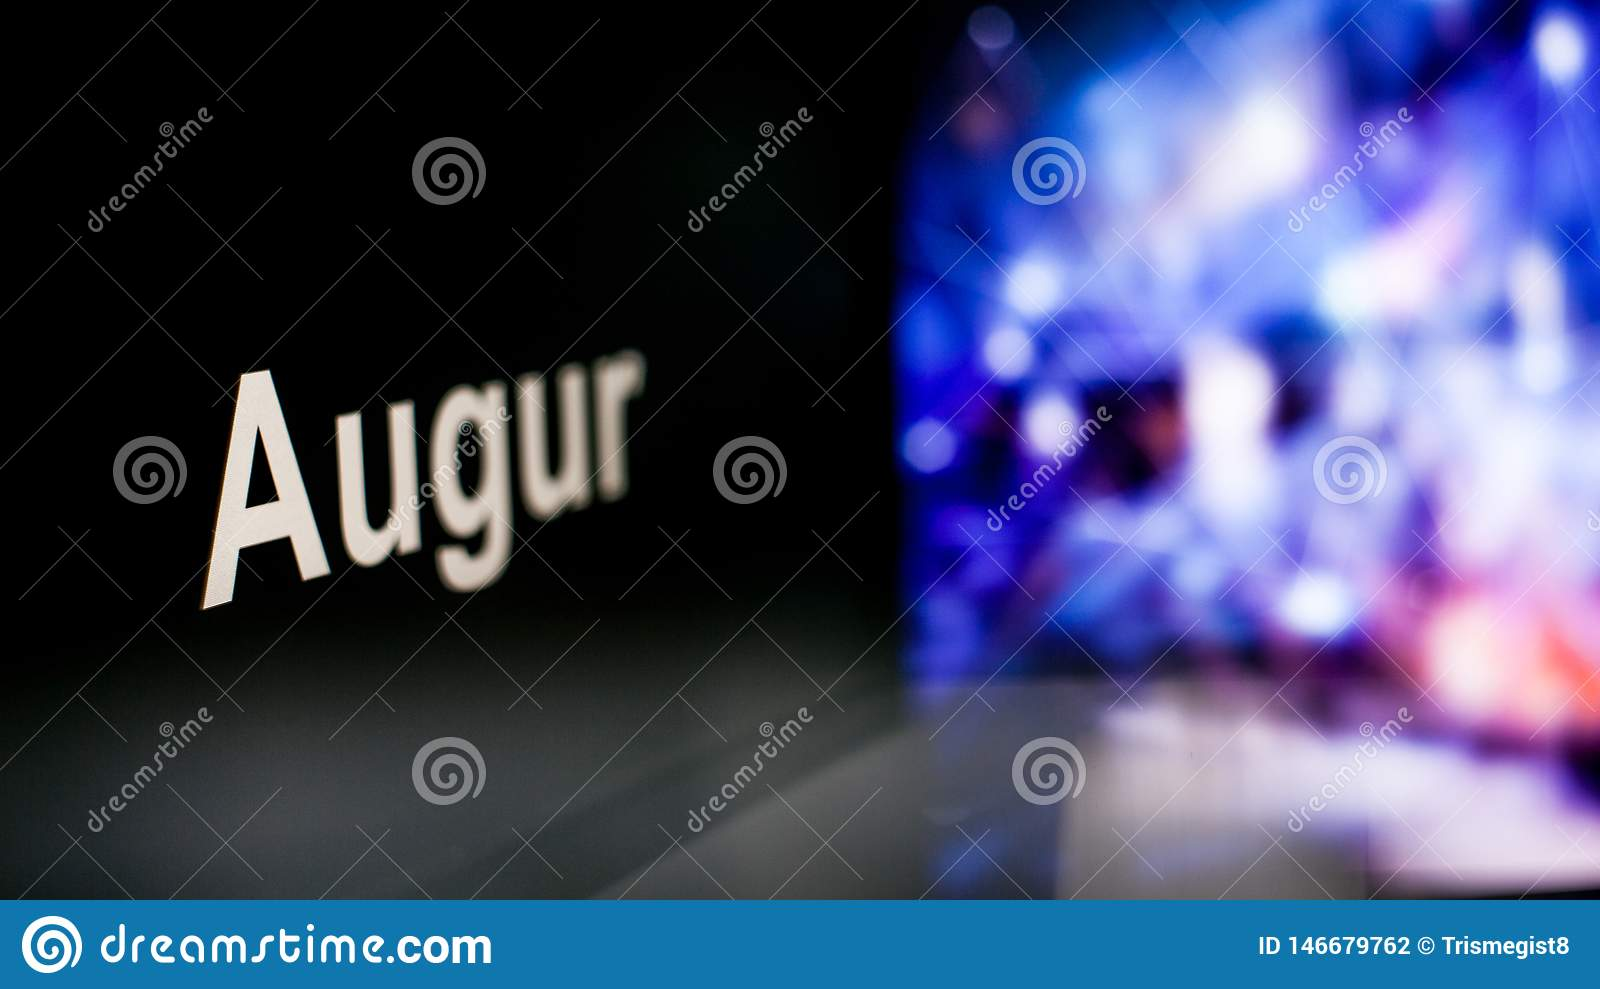 augur cryptocurrency exchange